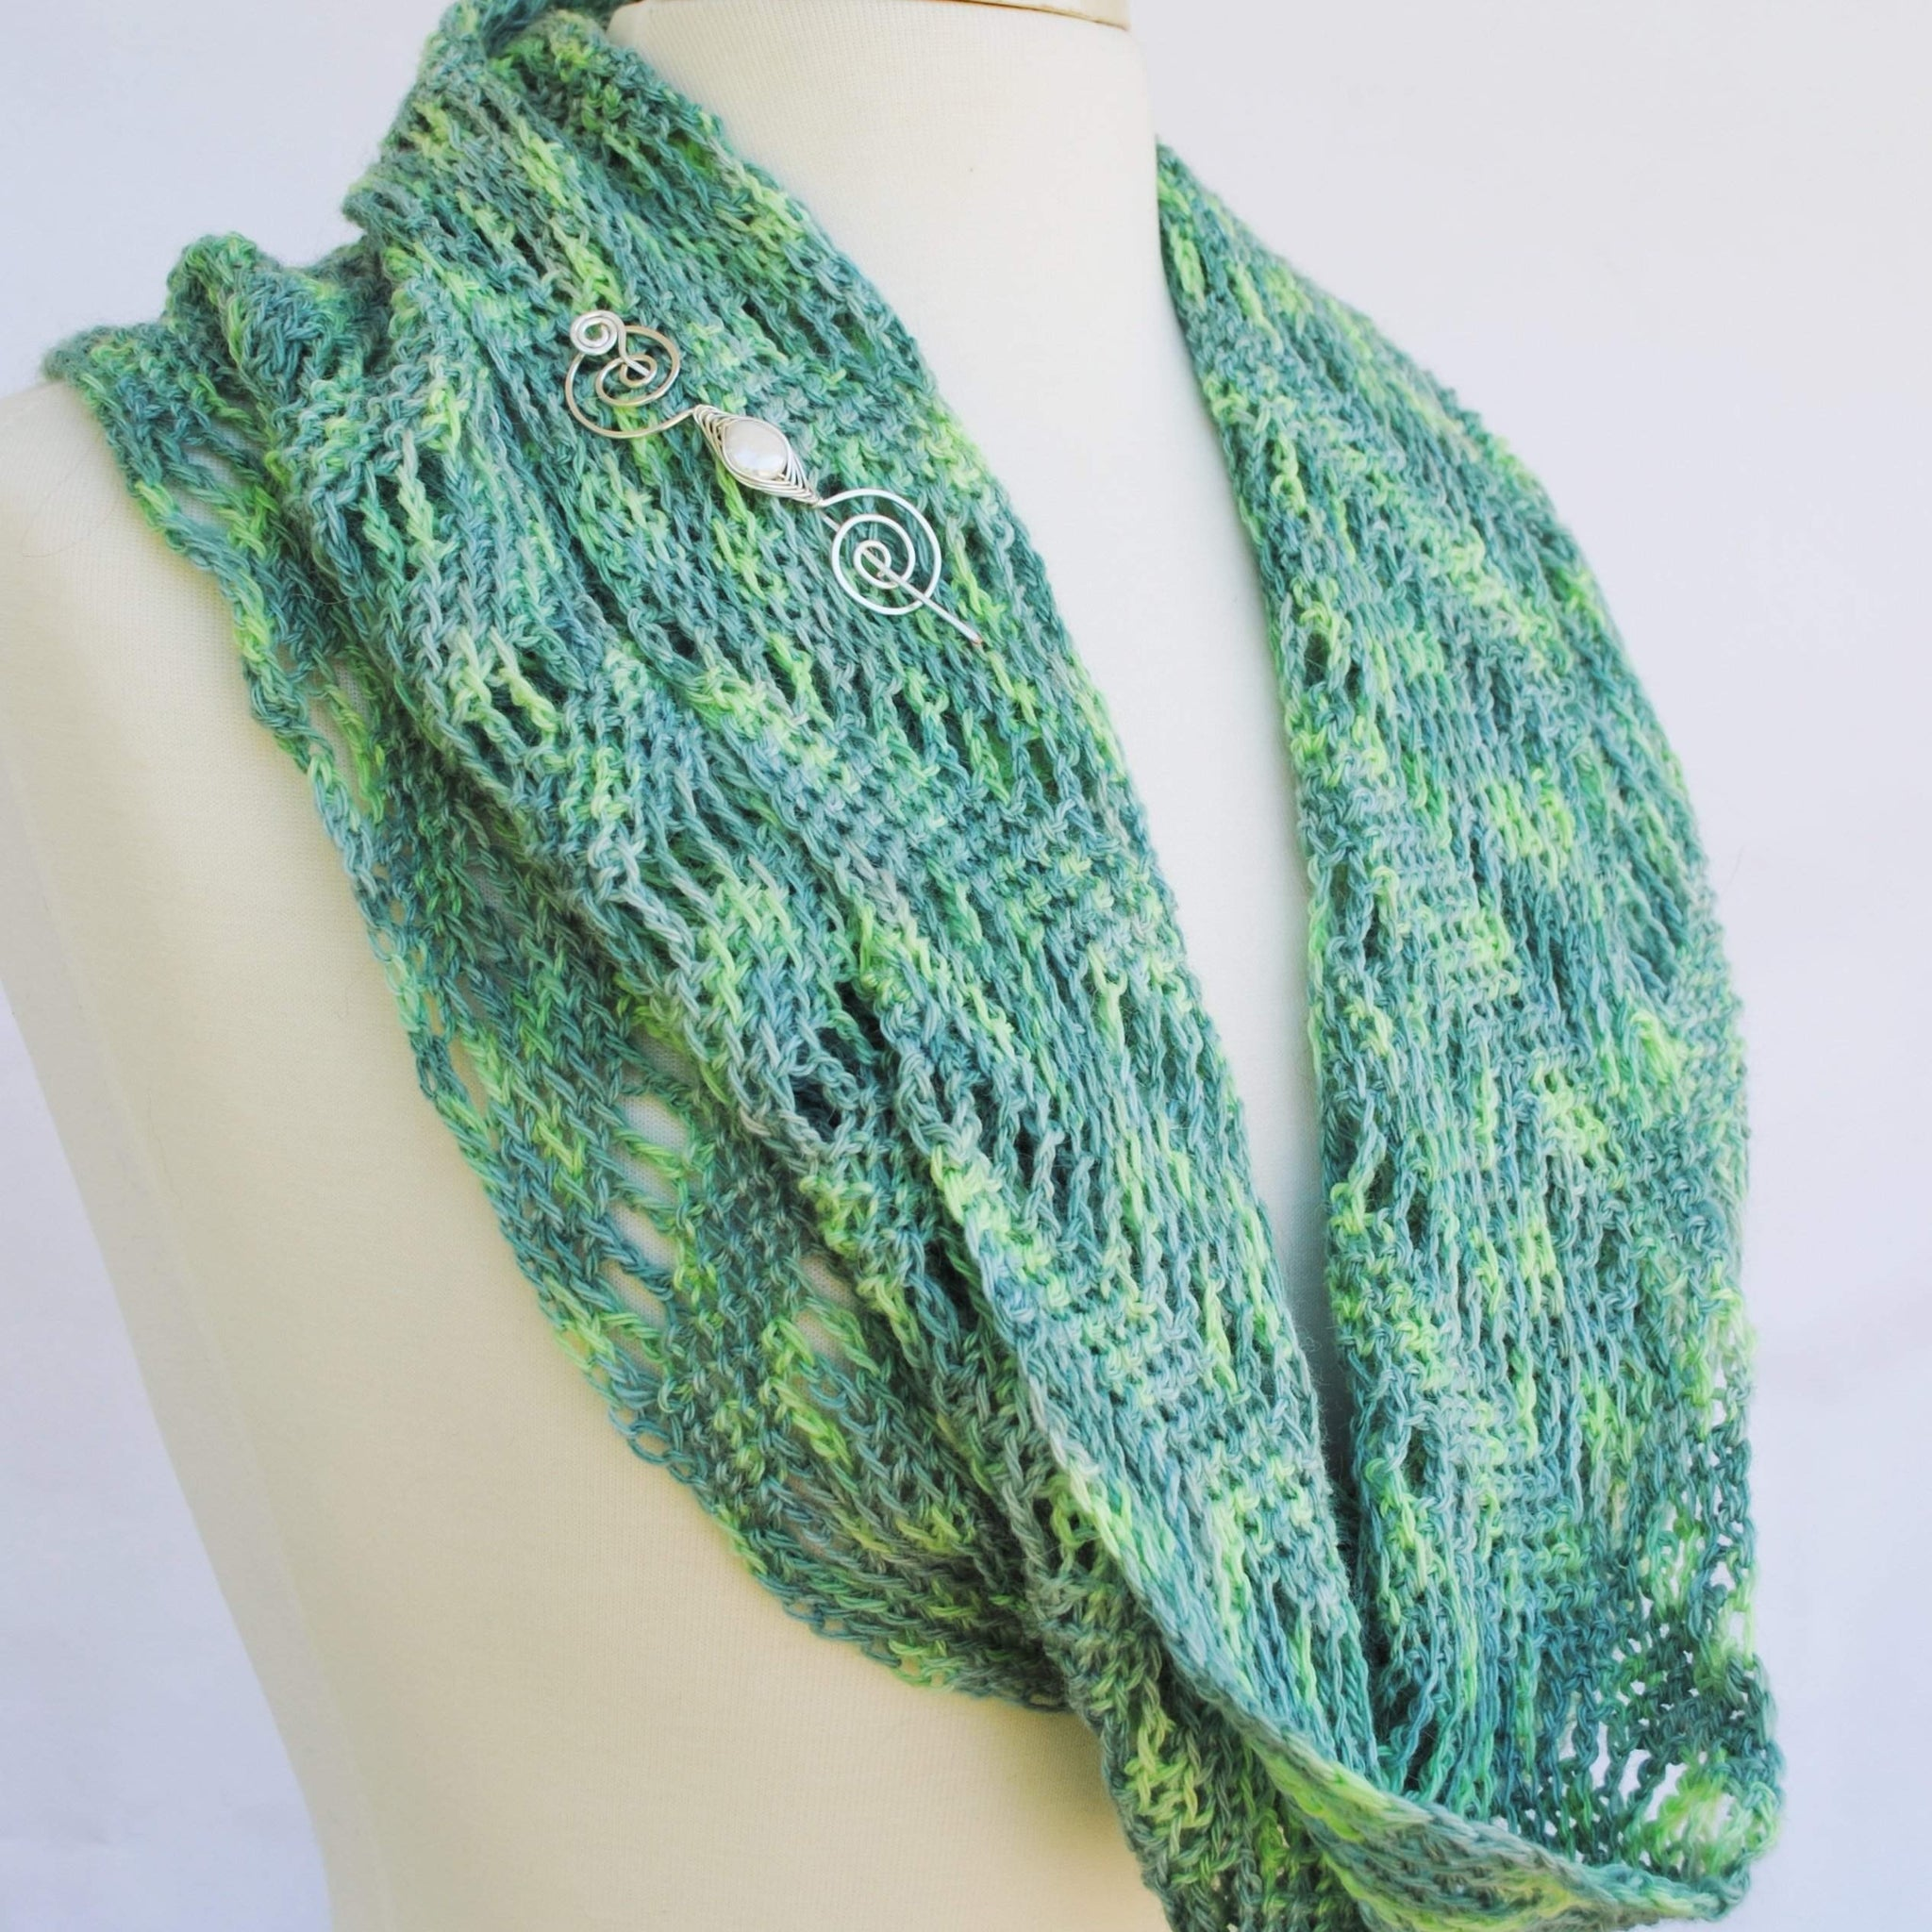 Rip Tied Hooked Crochet Infinity Scarf PDF Download - Crafty ...